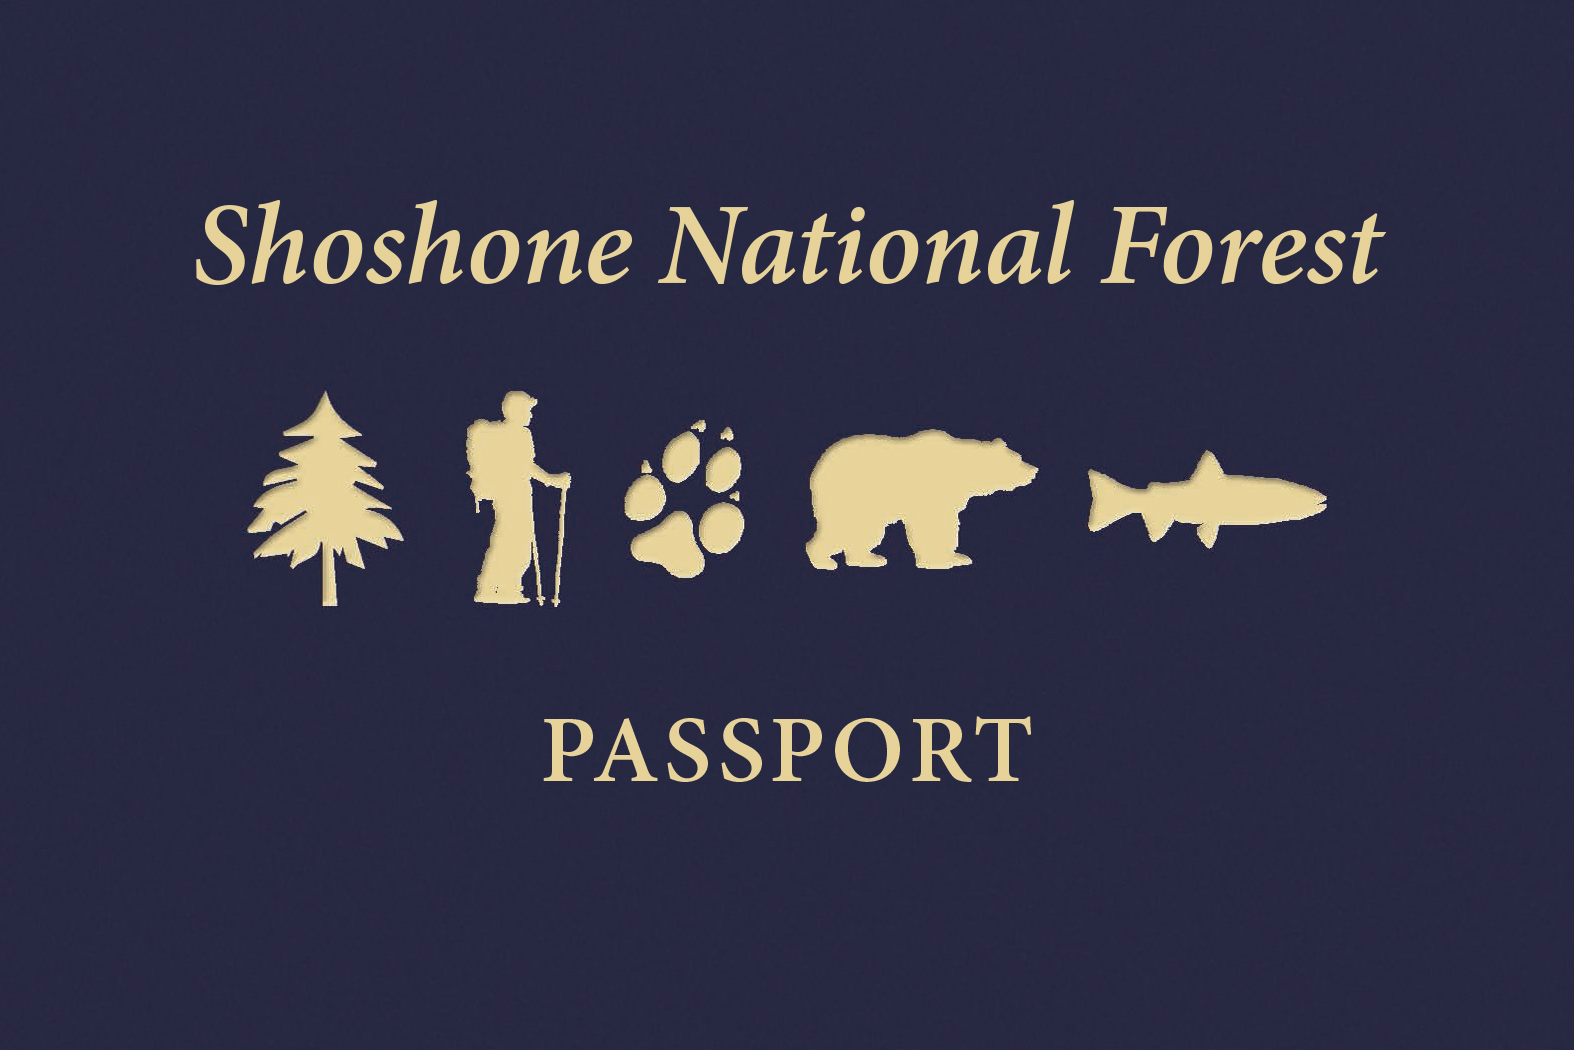 Shoshone National Forest Passport